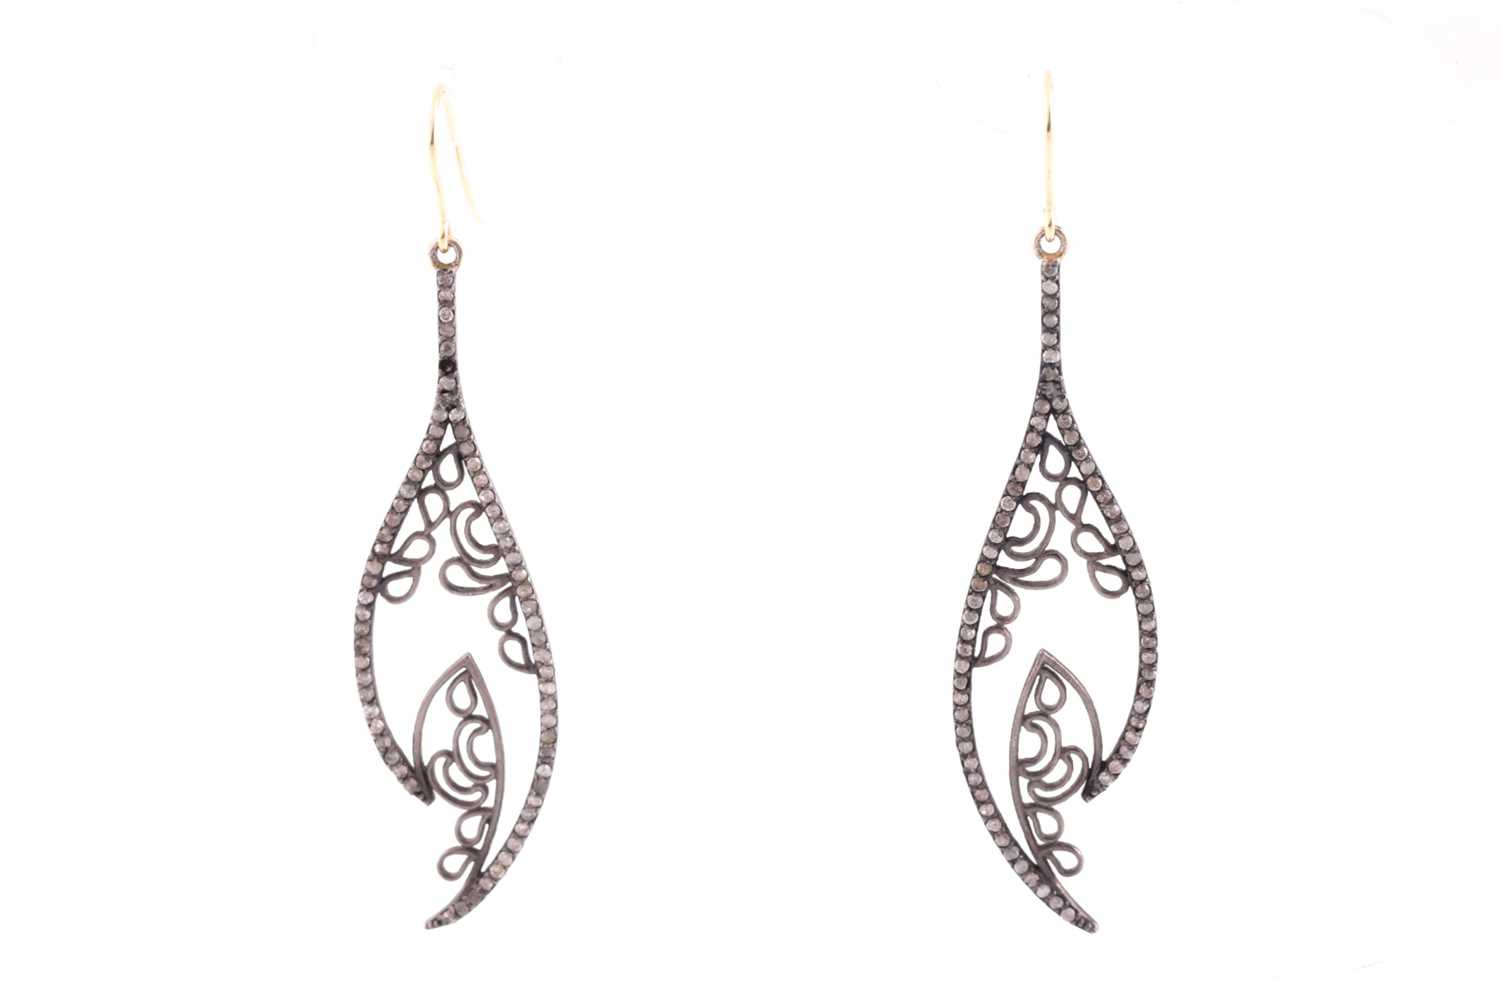 A pair of diamond drop earrings, the silvered openwork mounts inset with mixed old and rose-cut